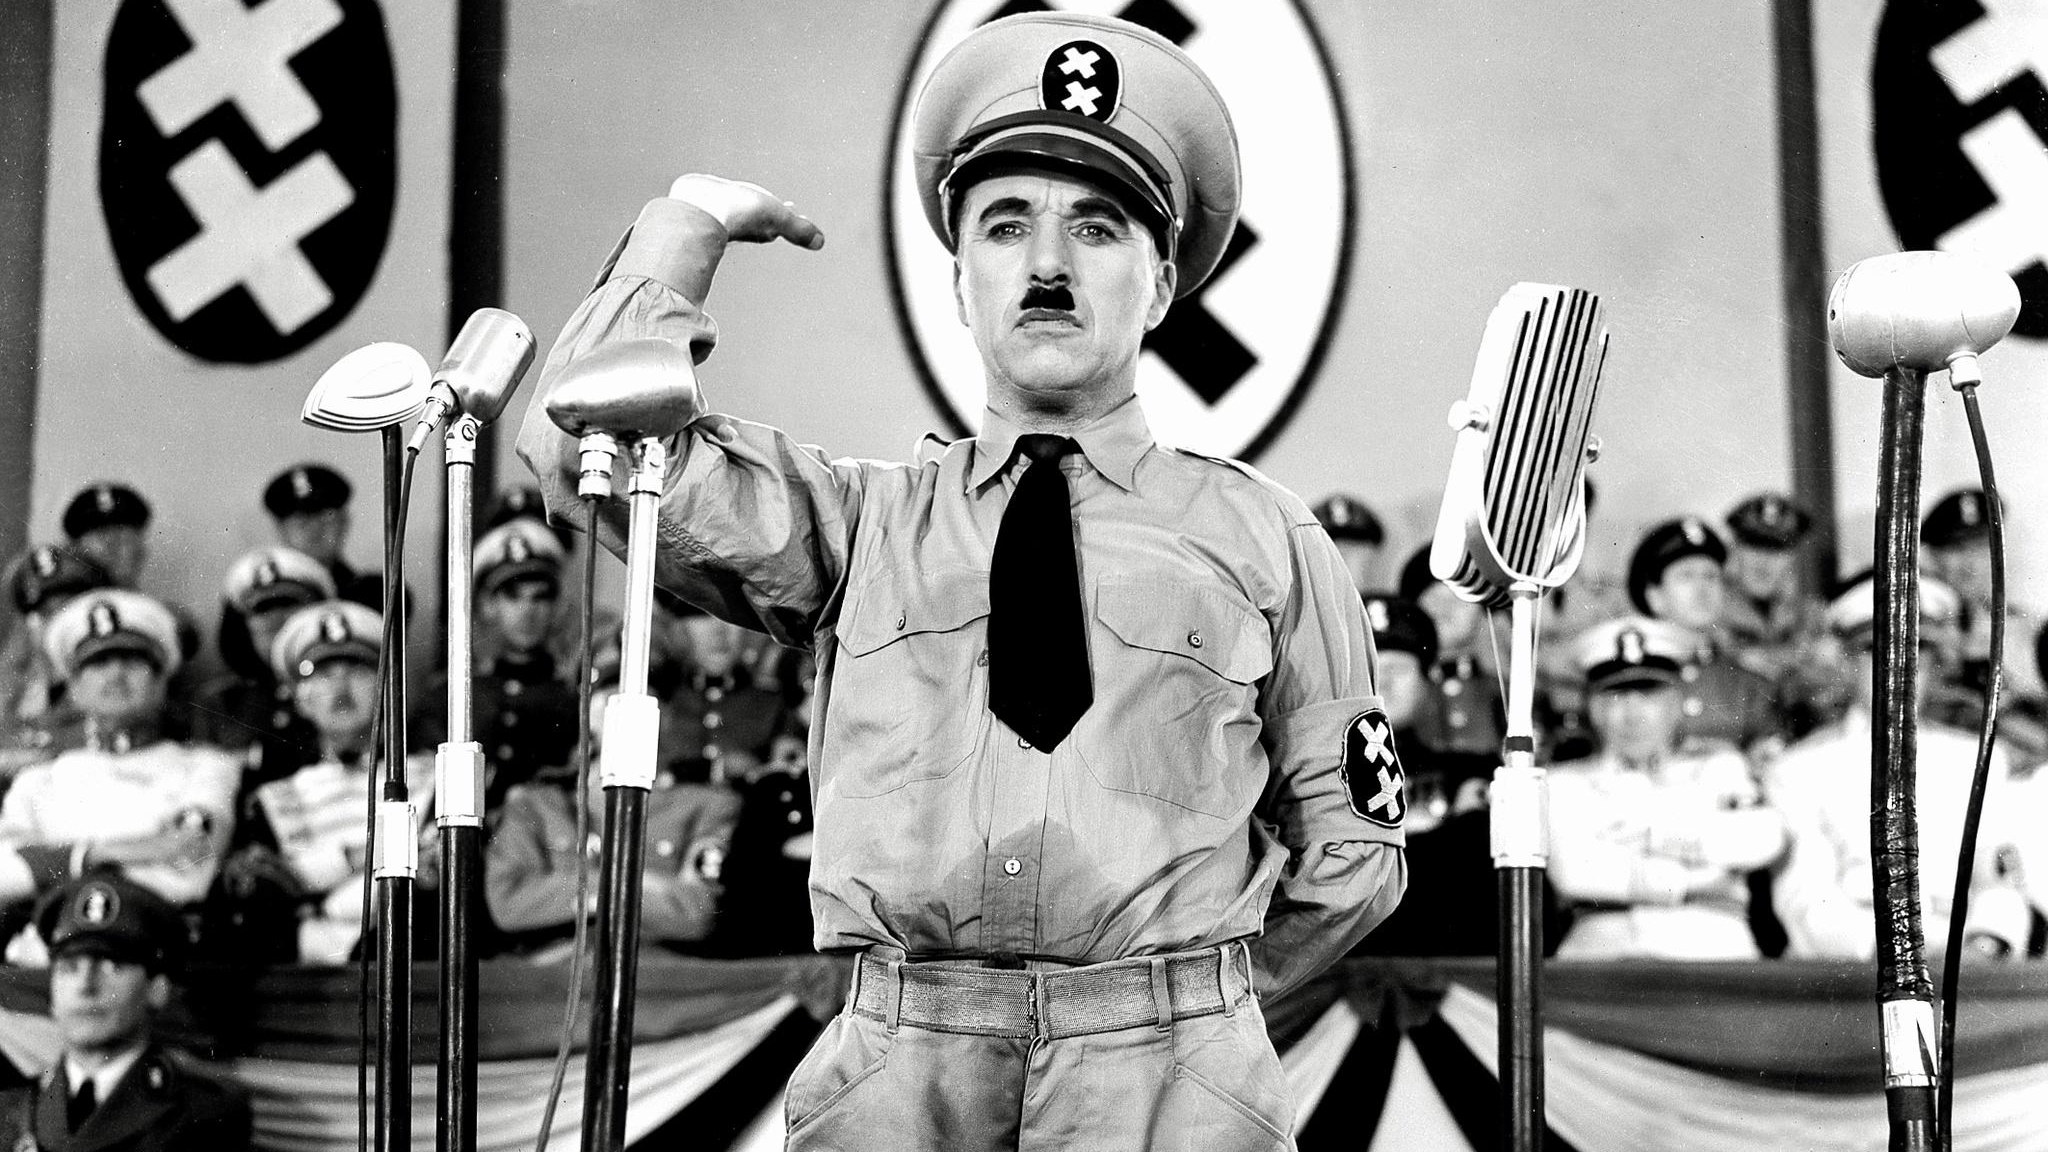 #45) The Great Dictator - (1940 - dir. Charlie Chaplin)